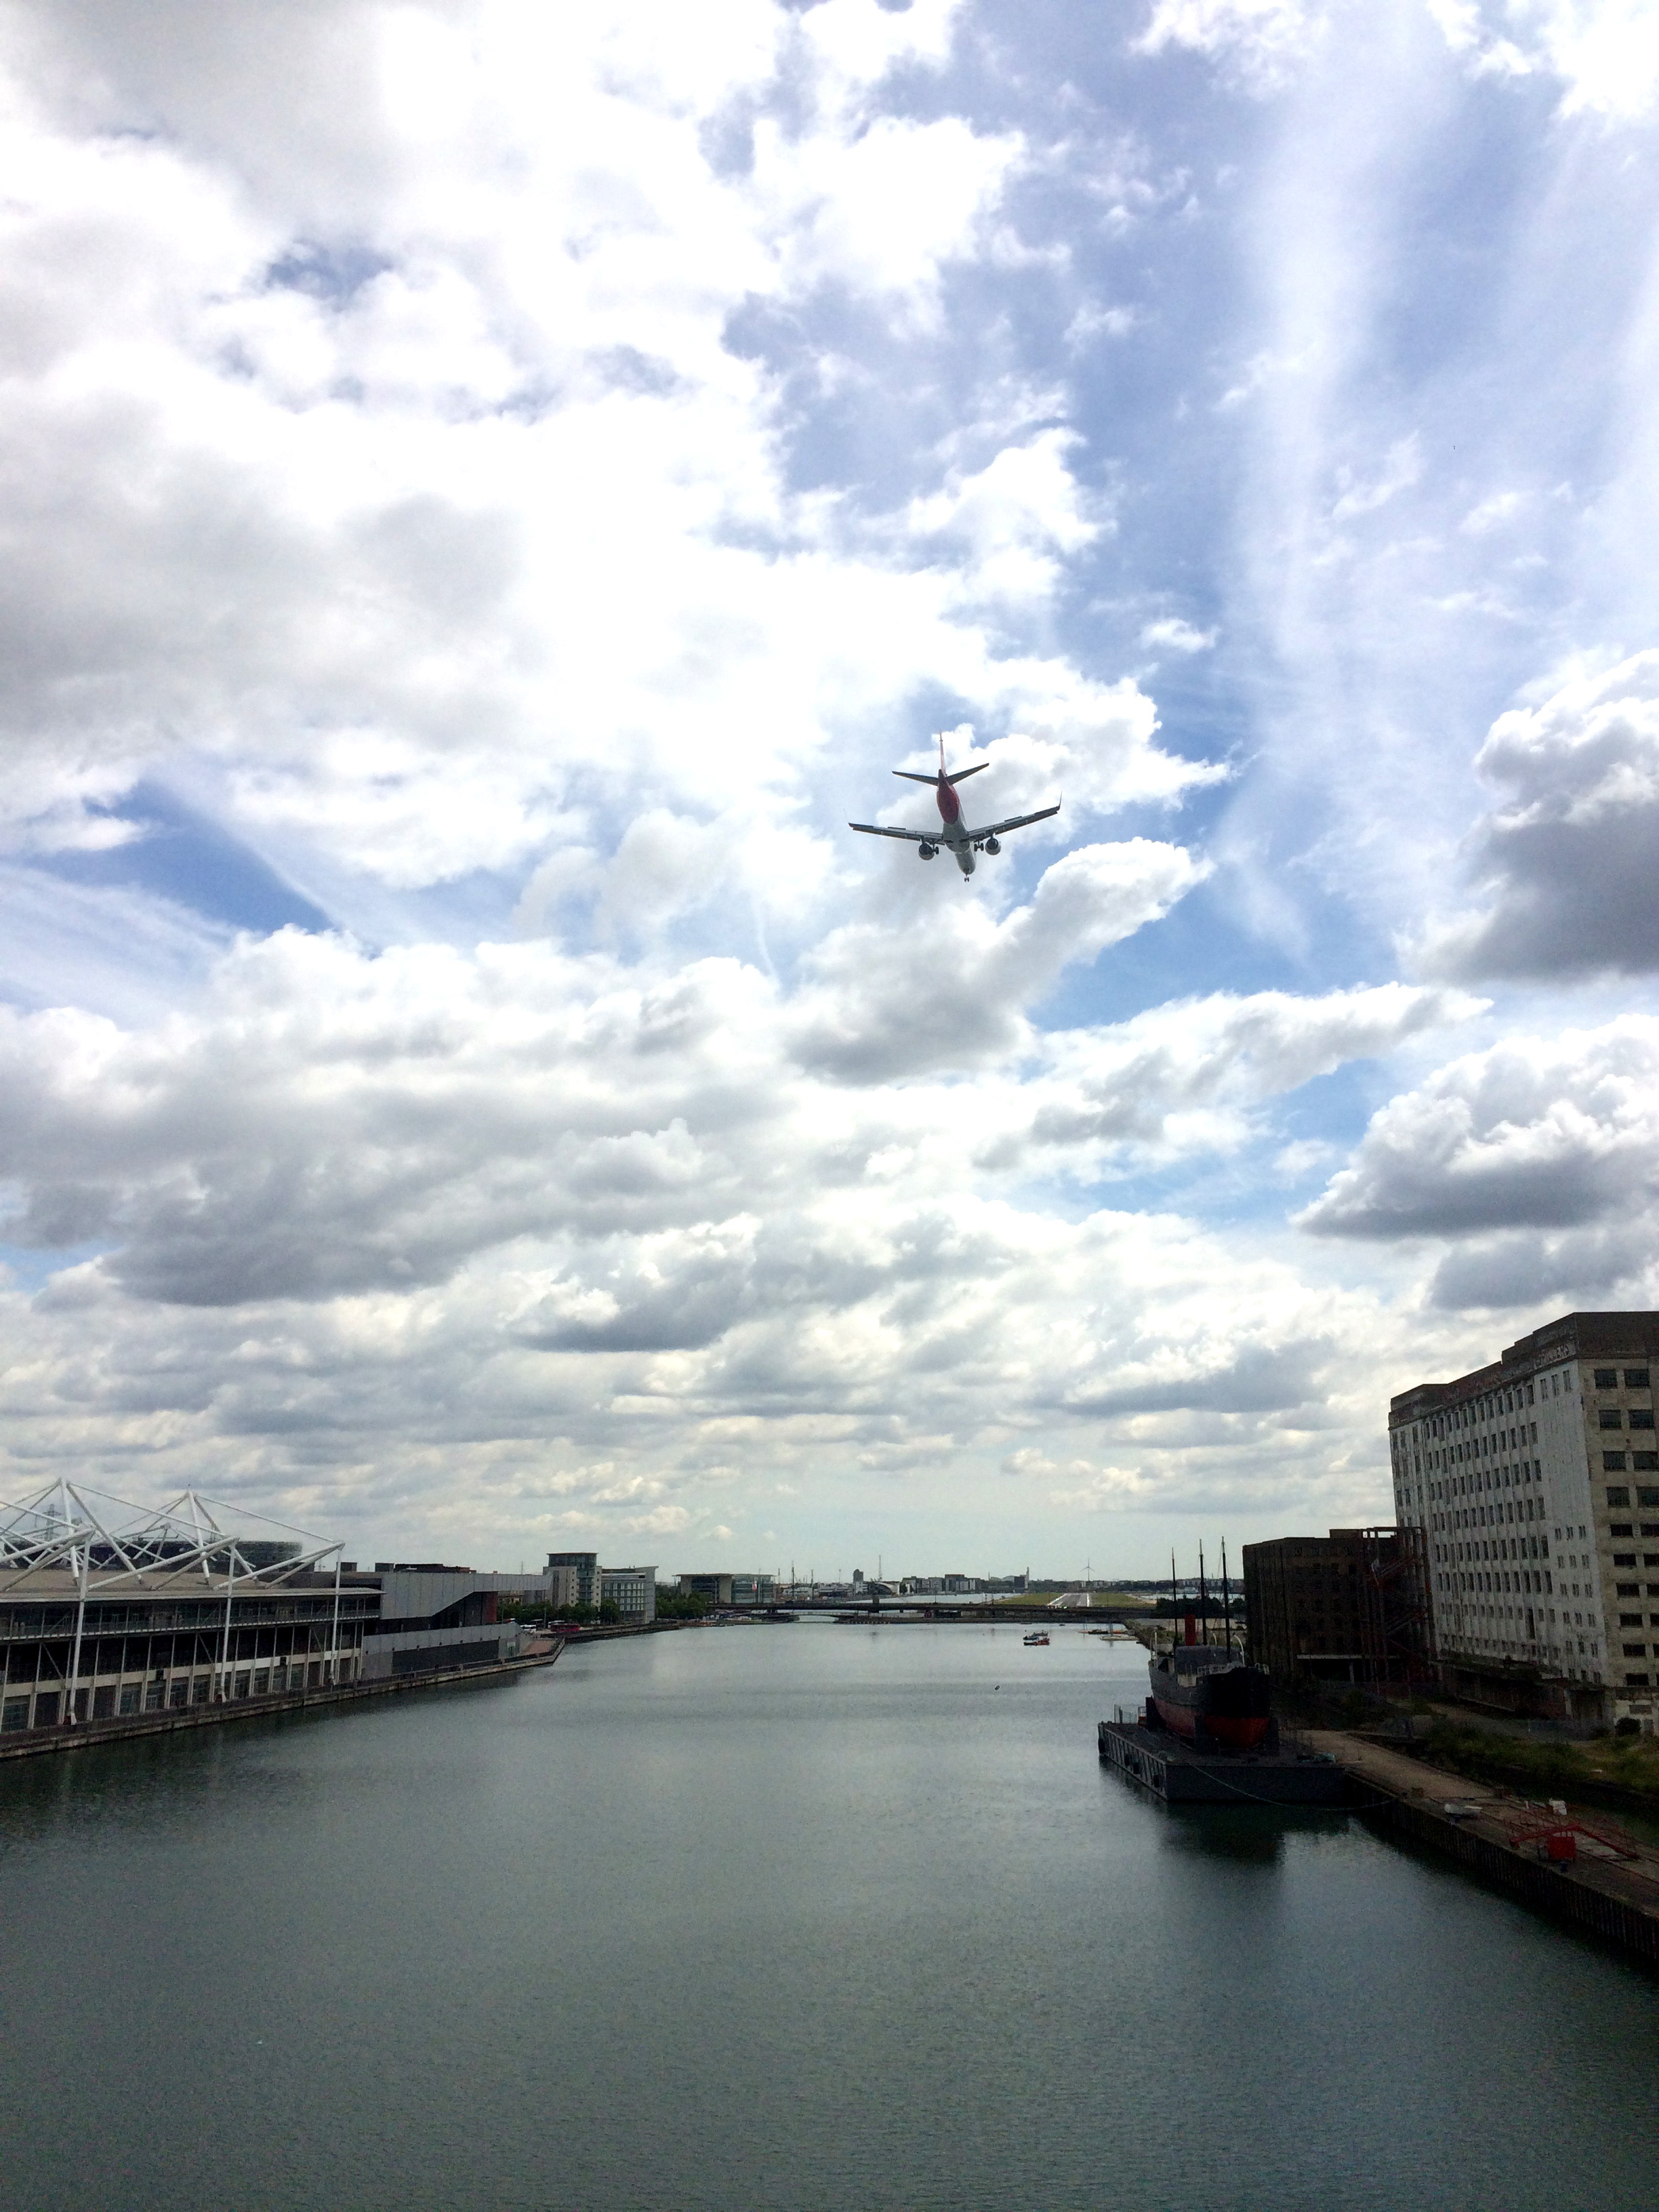 The plane flies over the Royal Docks to land